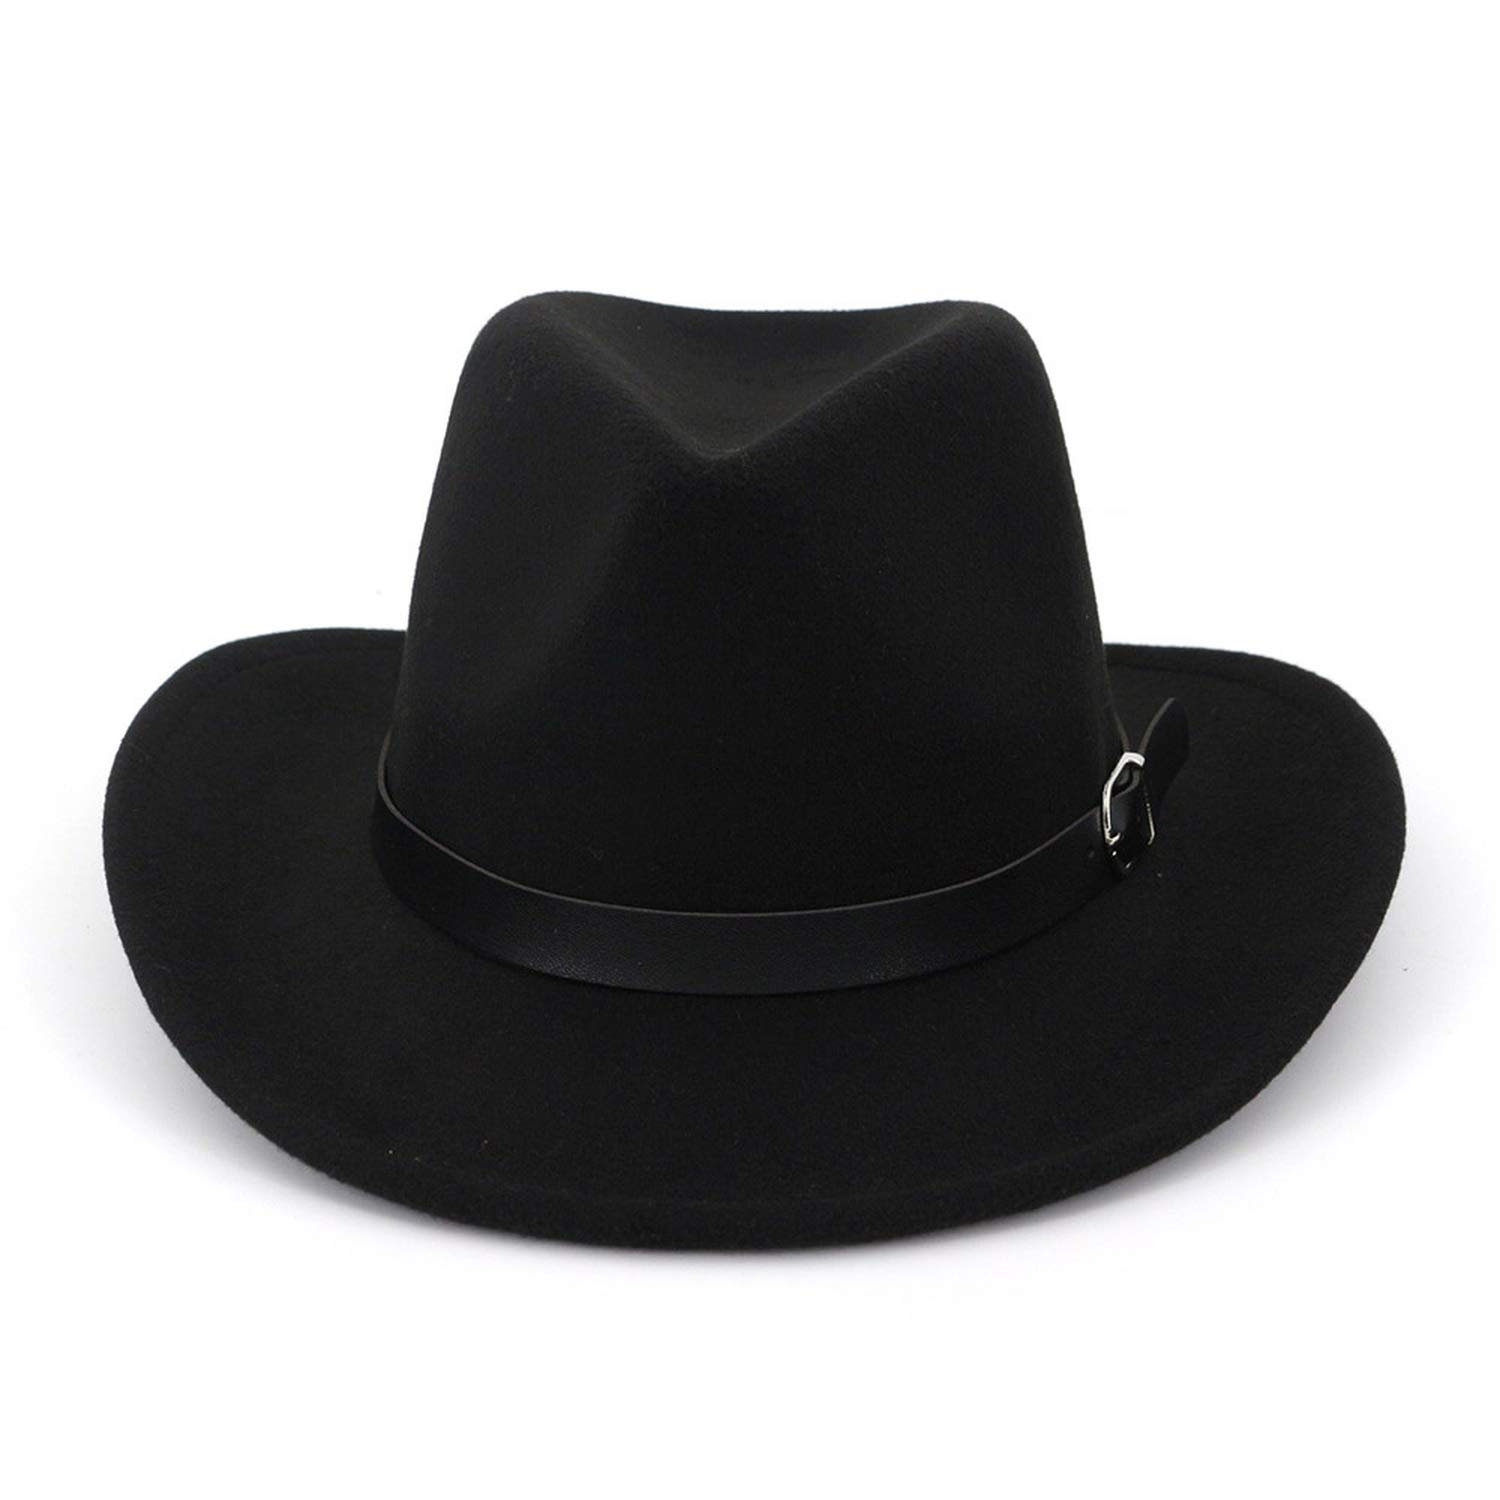 2019 Black Wool Hat for Winter Trilby Felt Fedora Hat Women Men Vintage Curling Brim Western Cowboy Style with